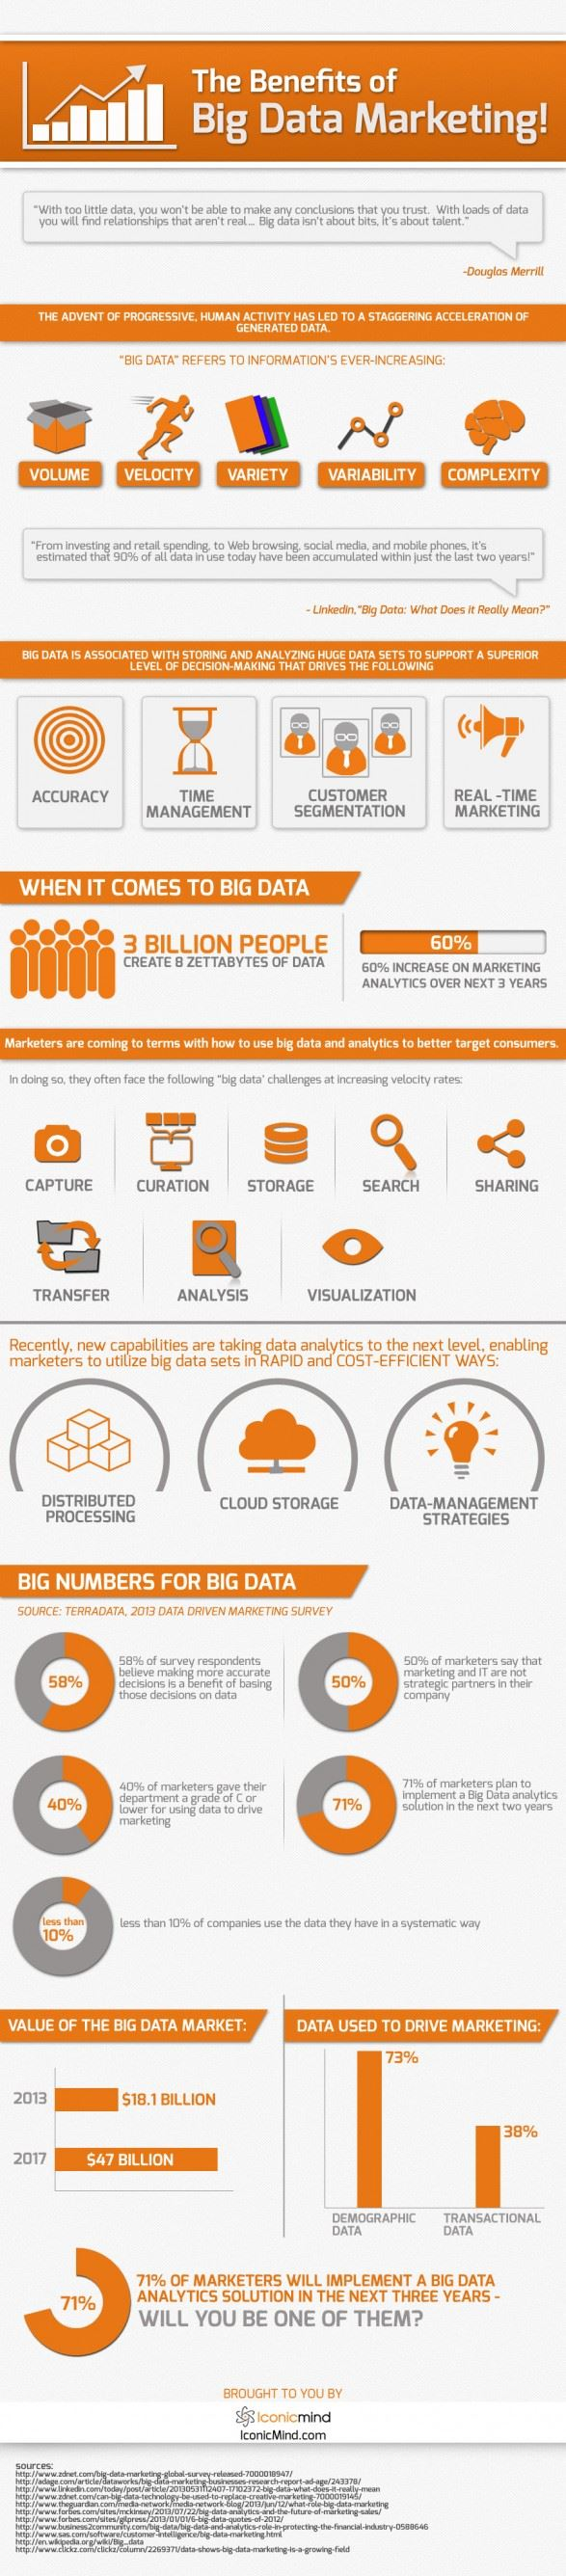 INFOGRAPHIC: The Benefits of Big Data Marketing